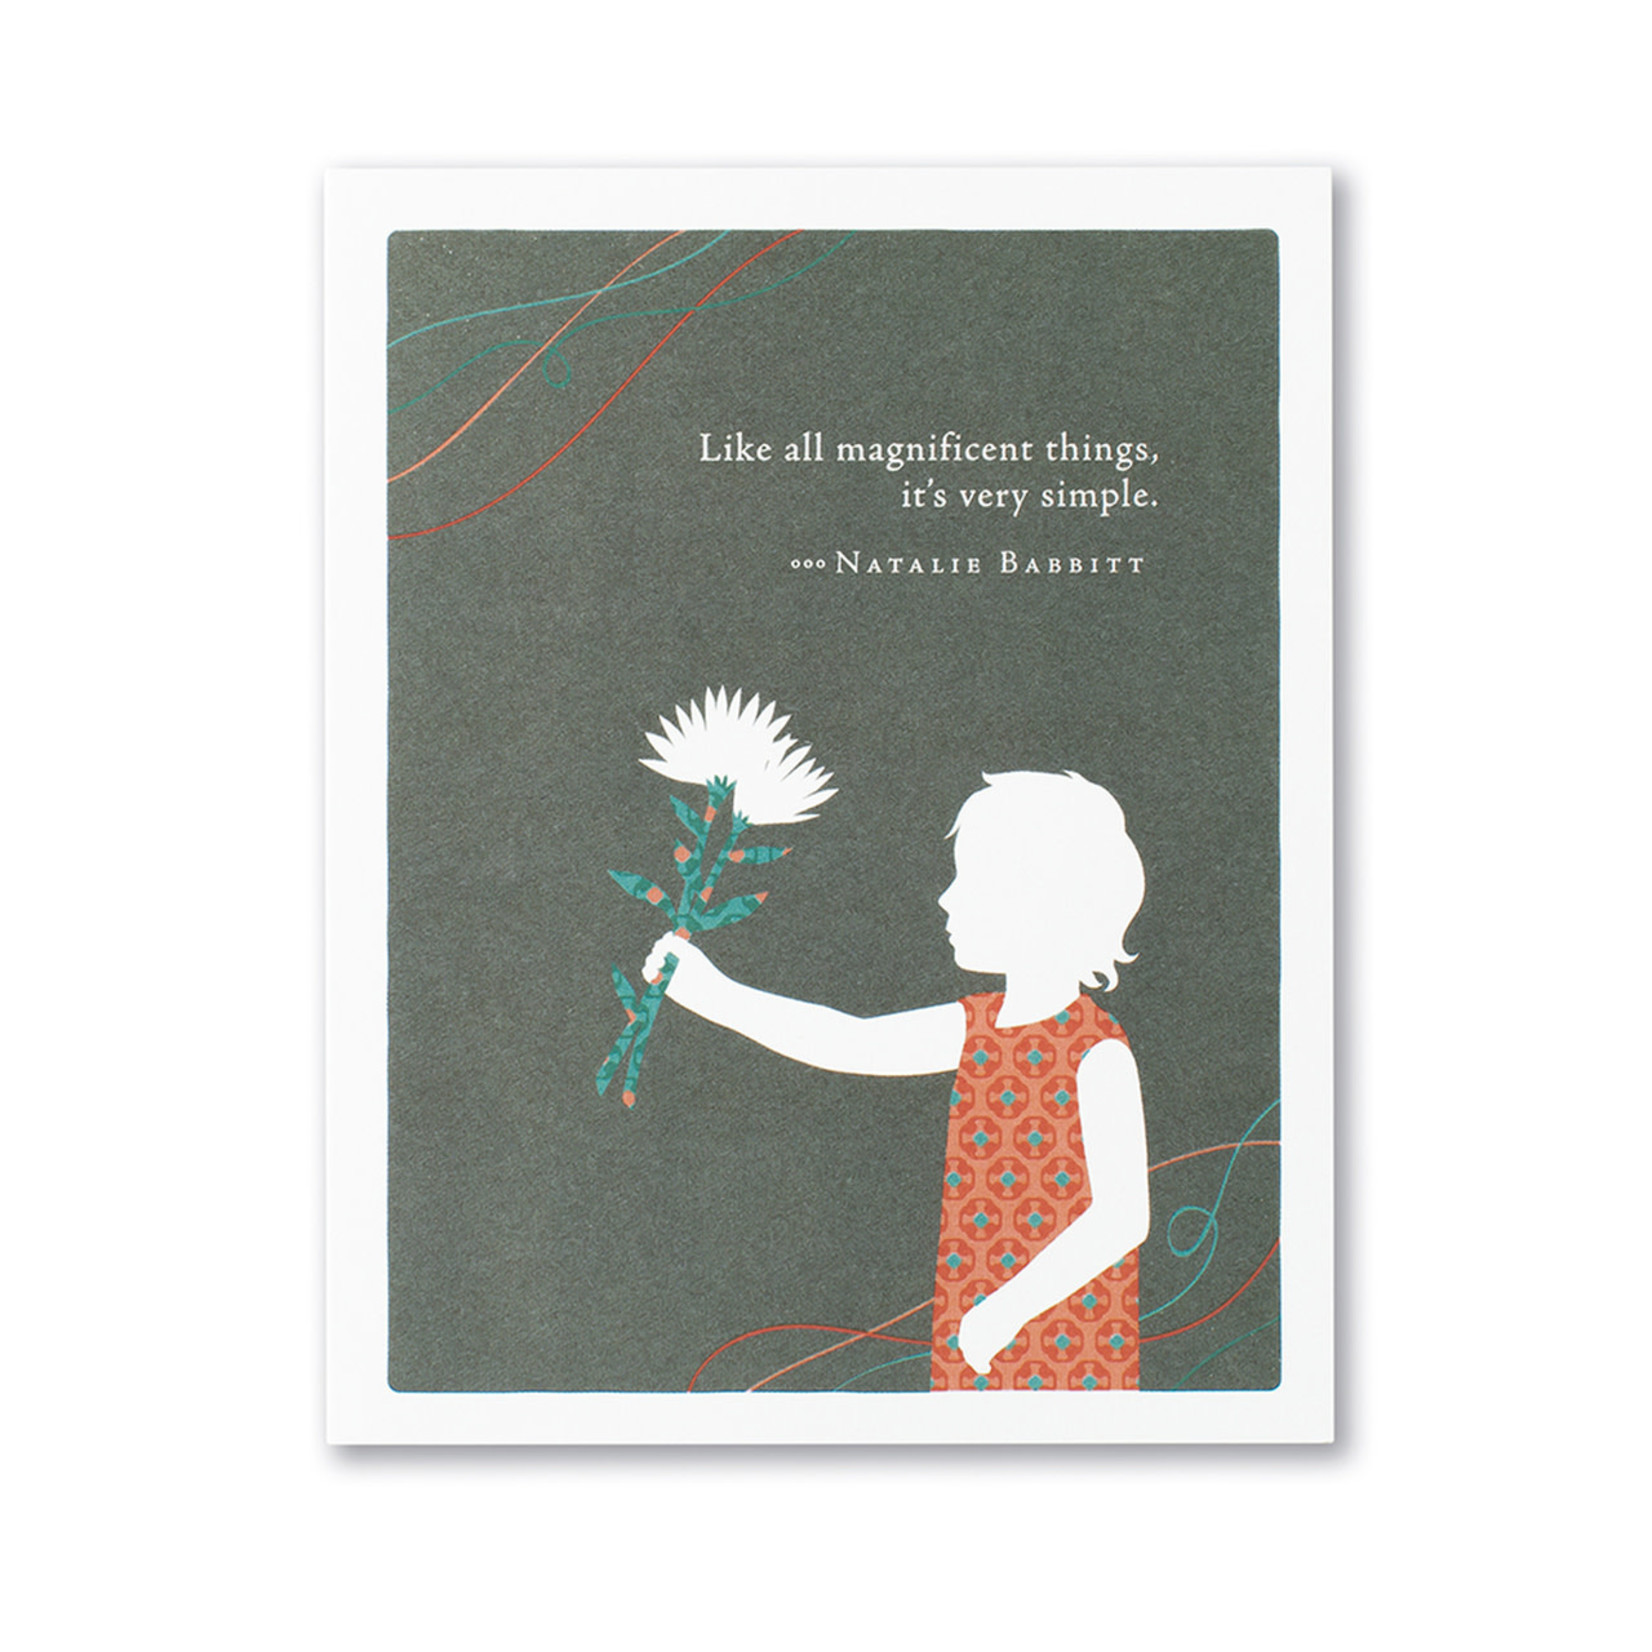 LIKE ALL MAGNIFICENT THINGS CARD